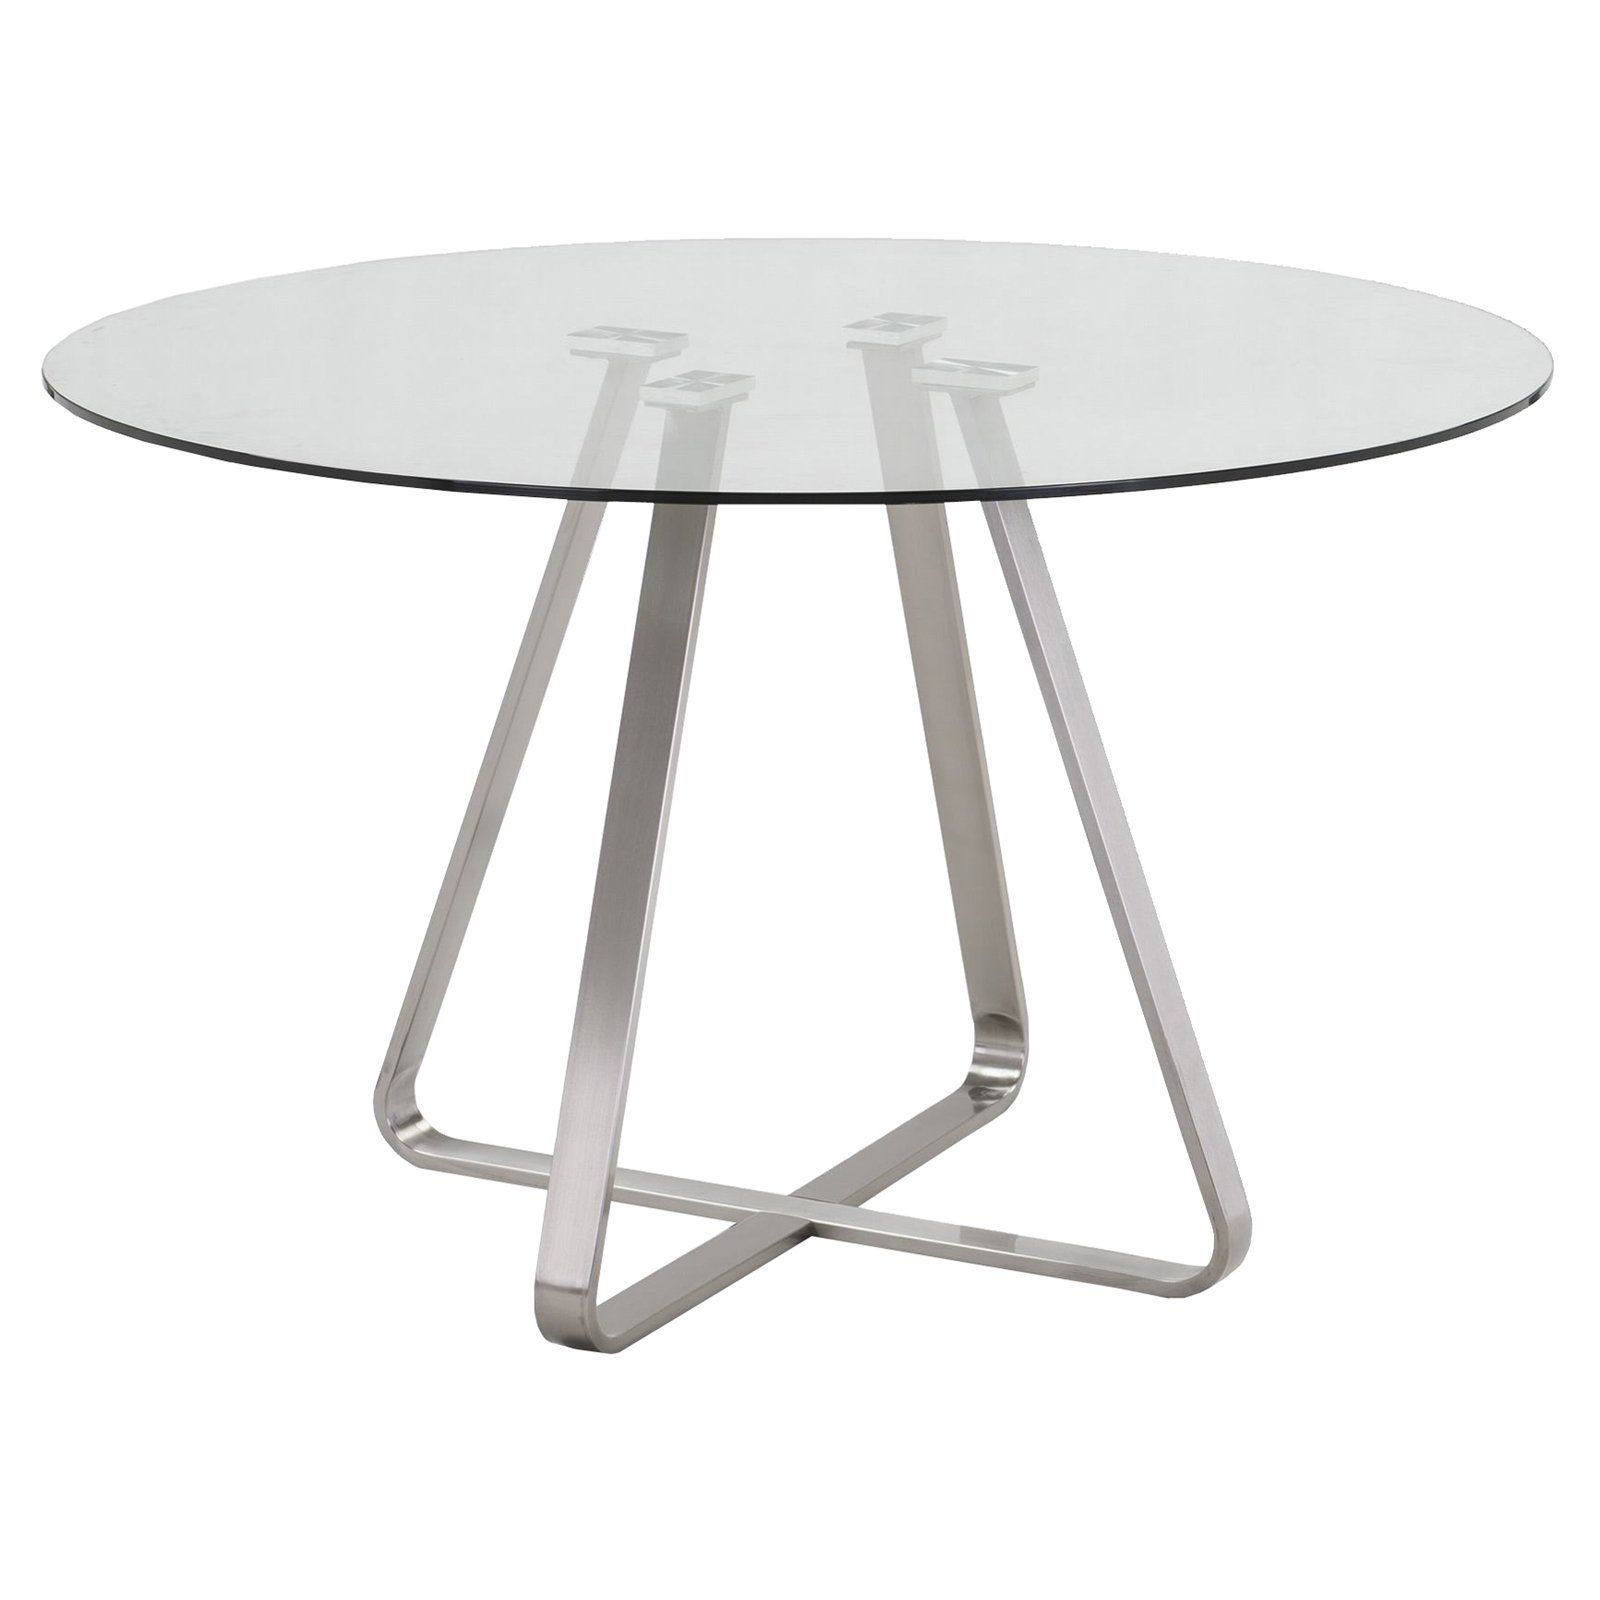 Armen Living Cameo Round Dining Table | from hayneedle.com | family ...